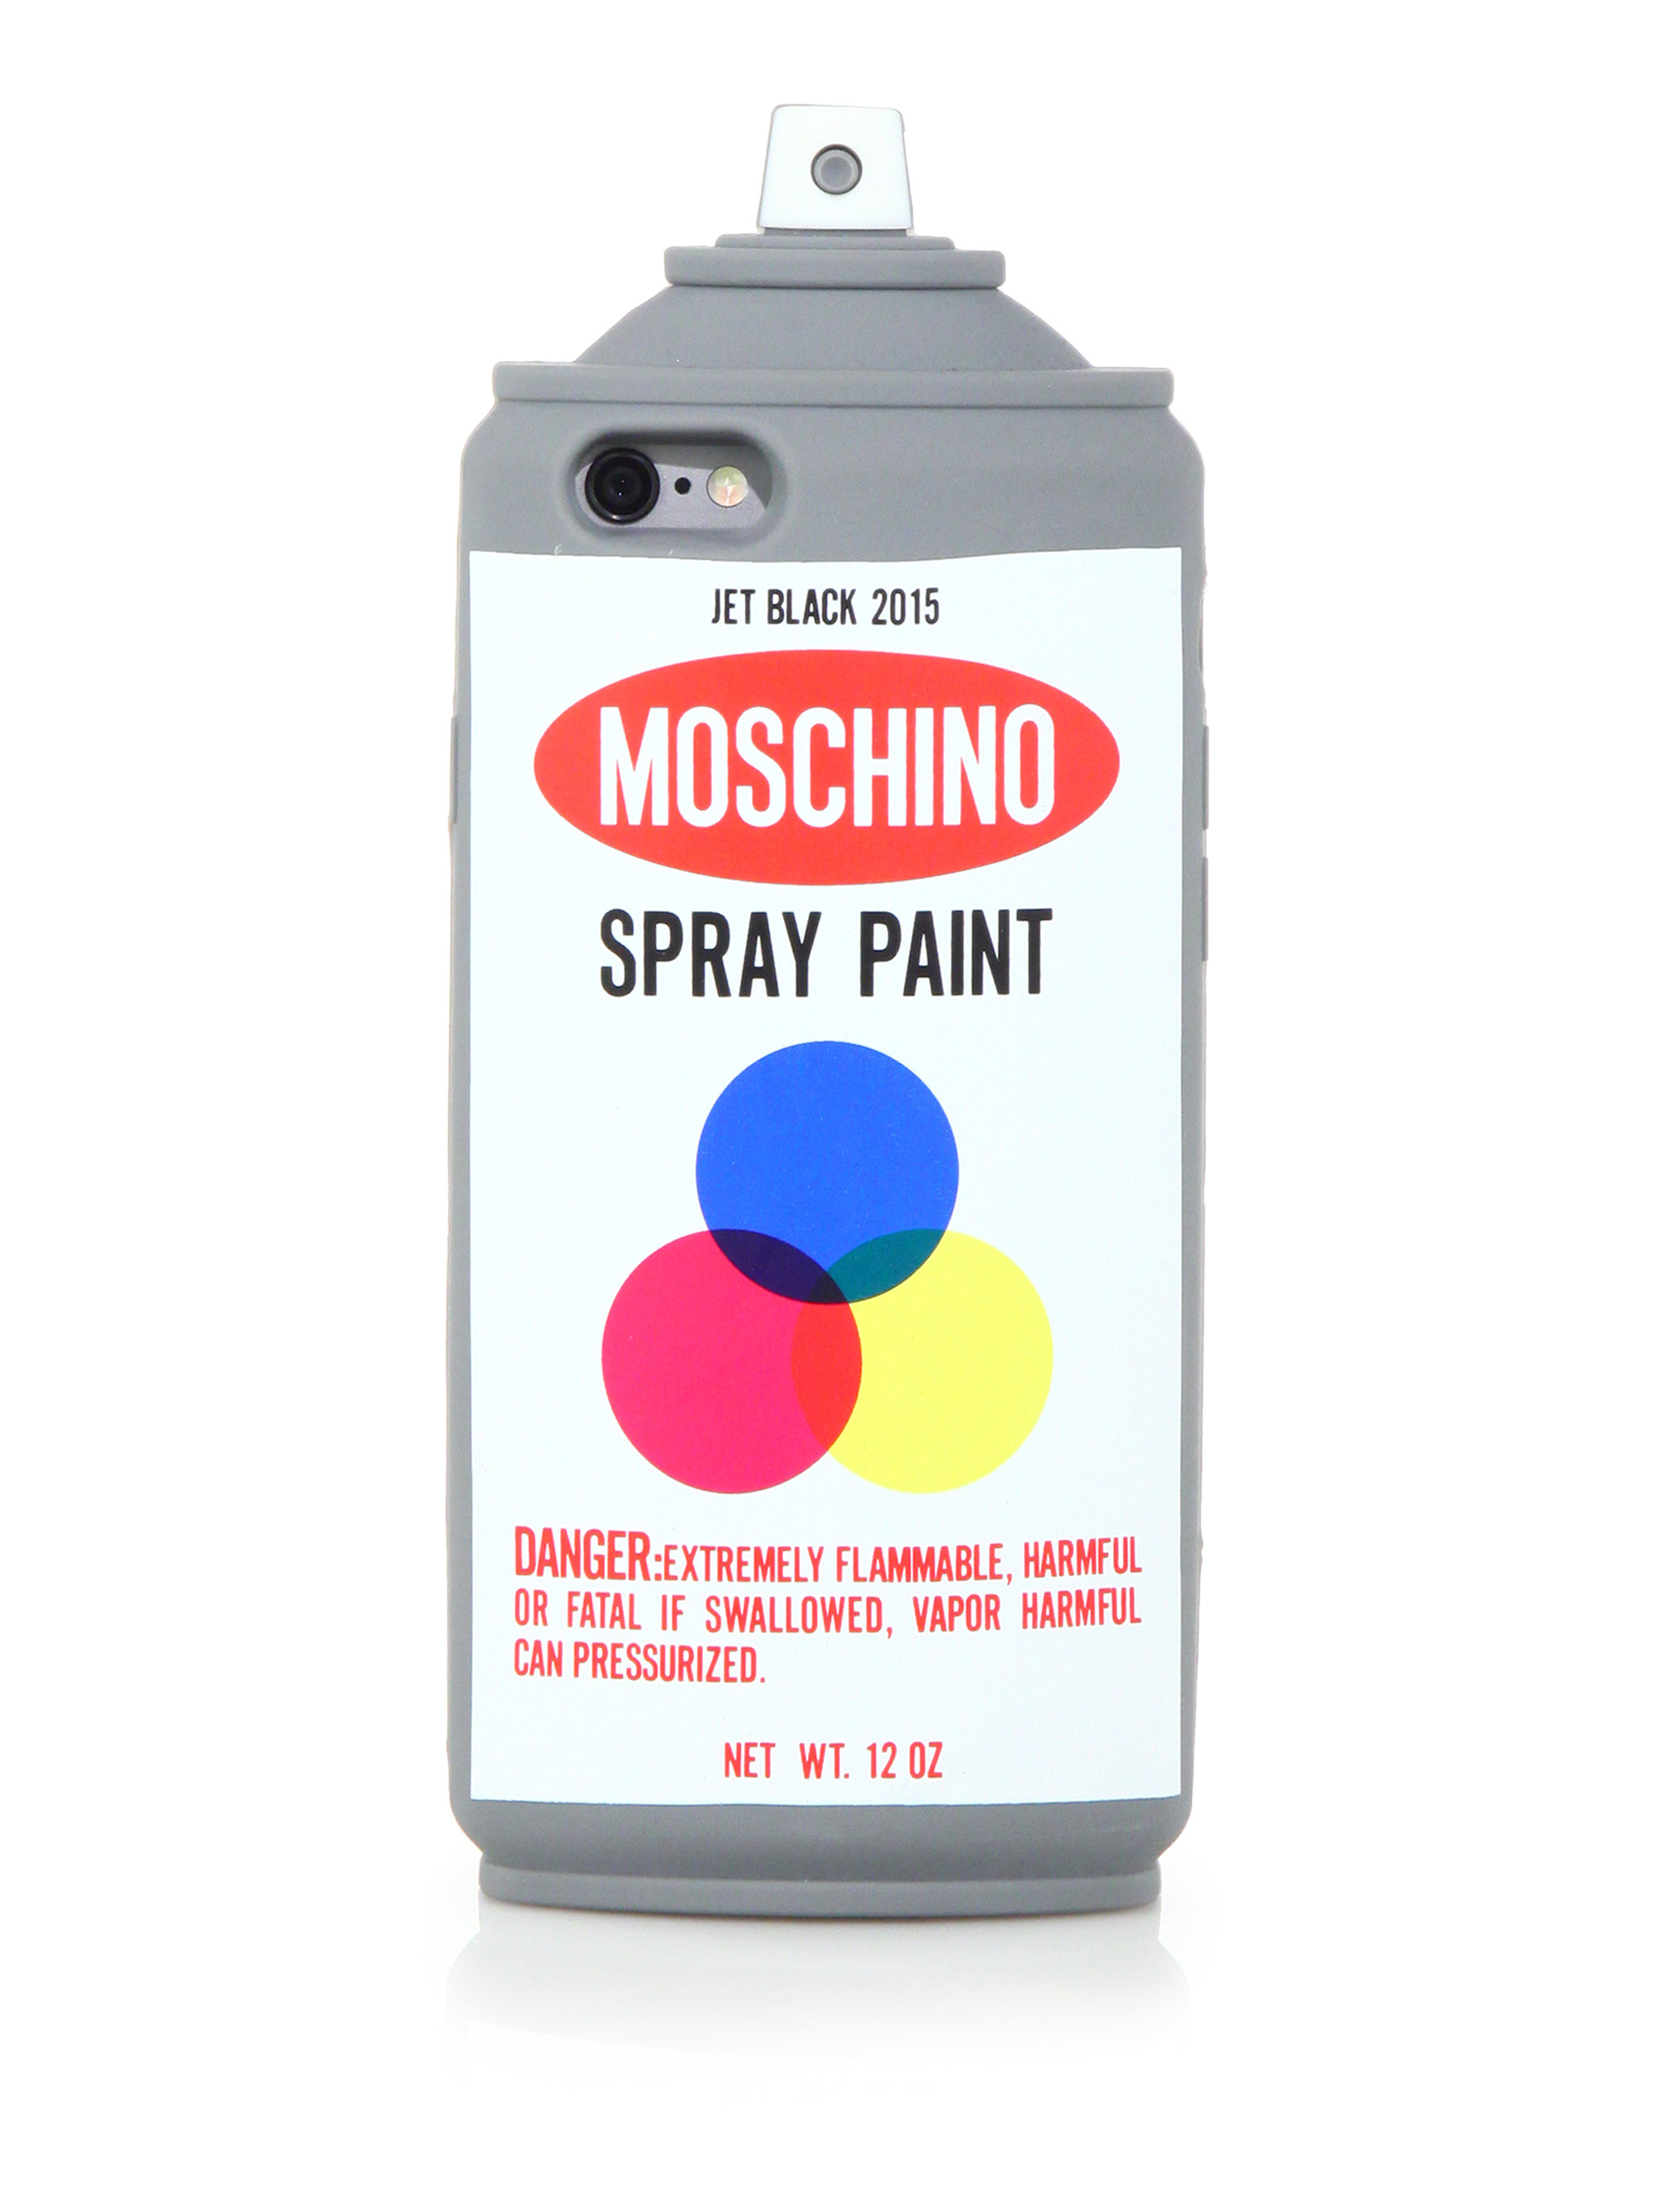 Moschino spray can iphone 6 case lyst for Spray paint phone case